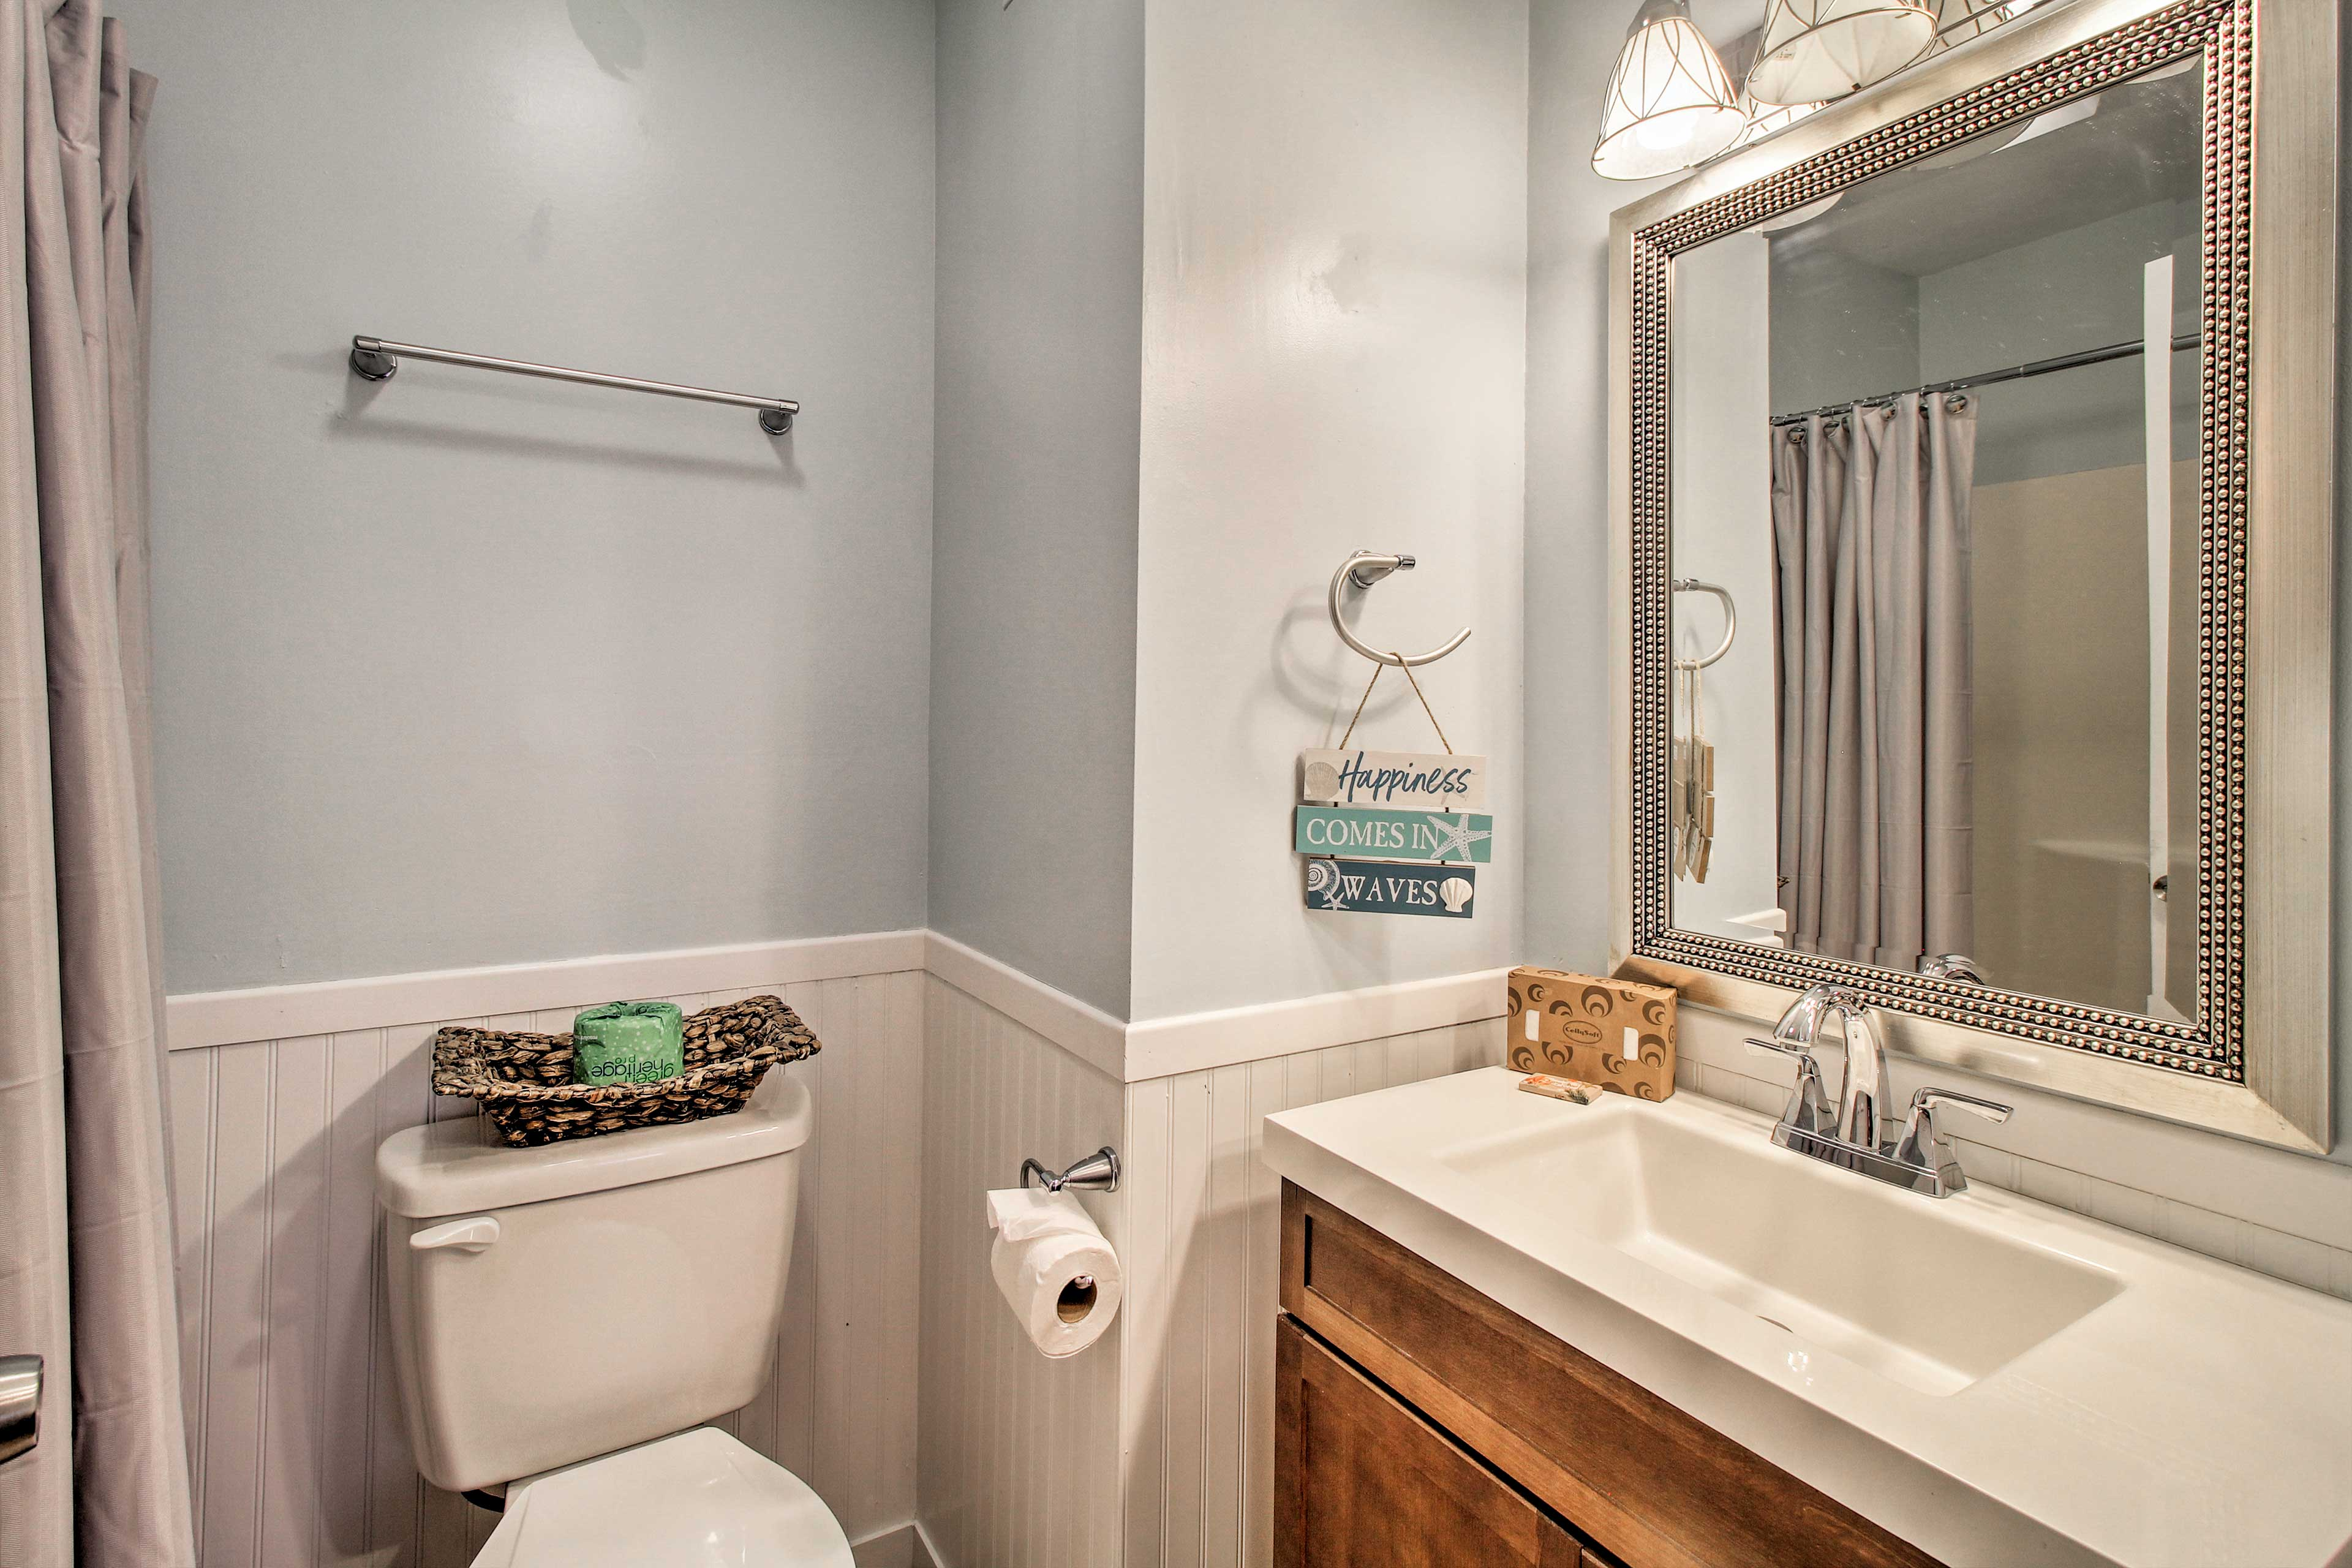 You'll have the added luxury of a master en-suite bathroom.